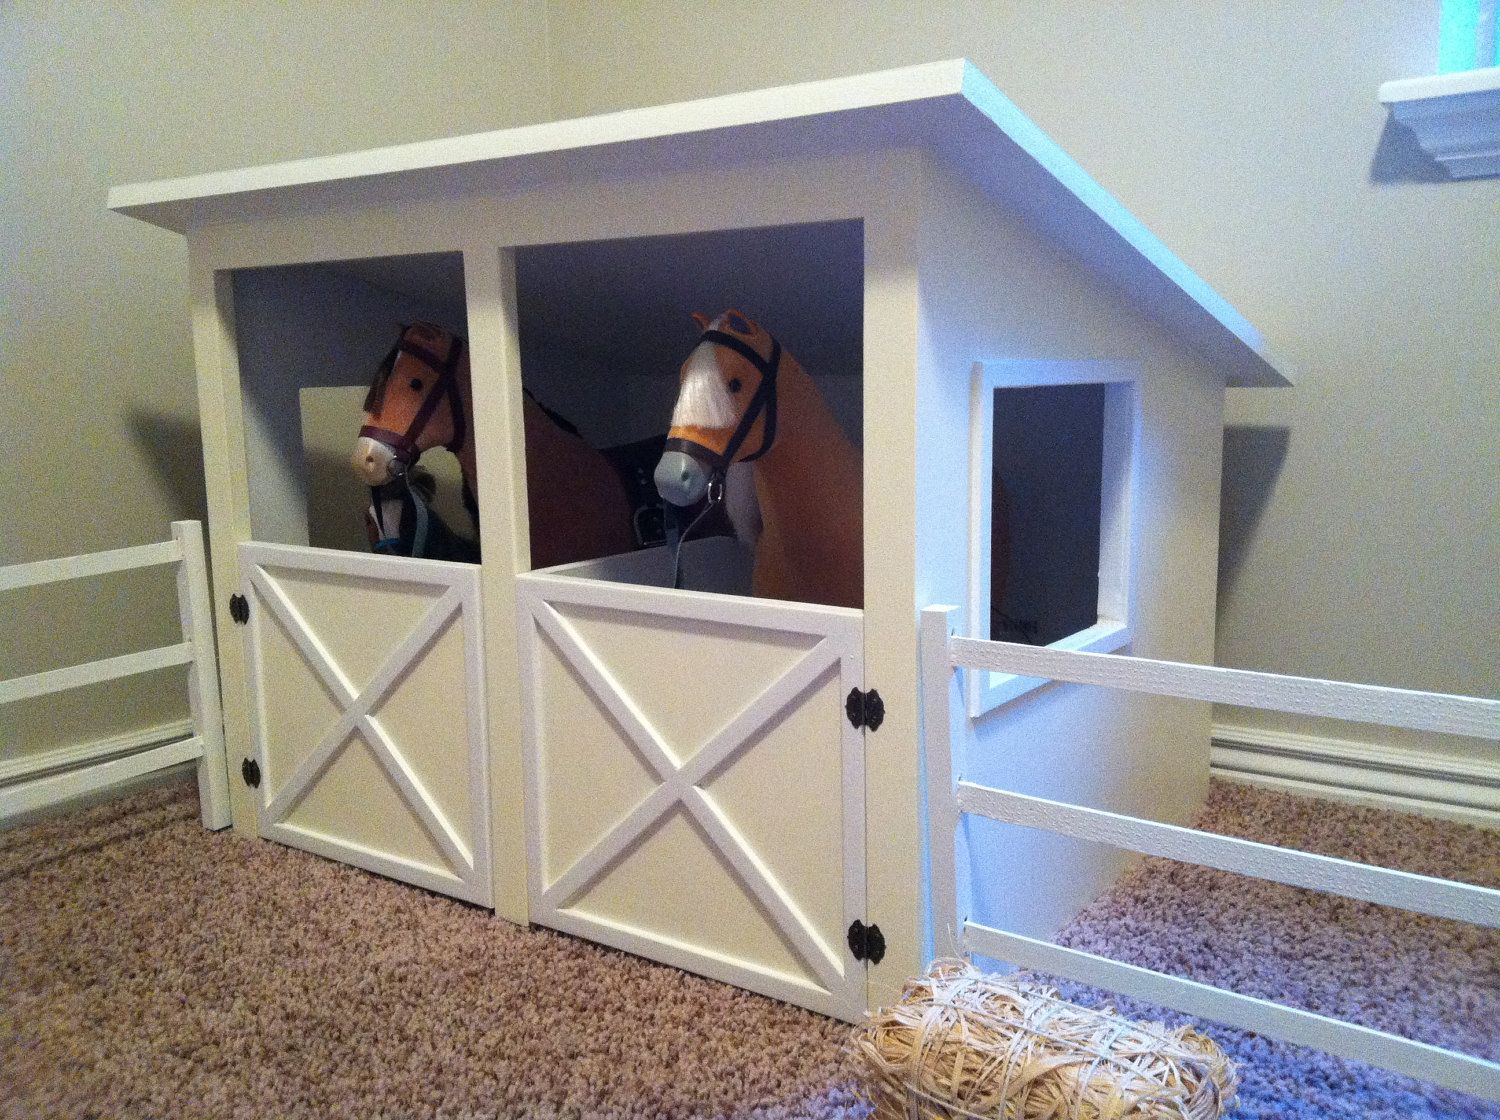 Doll Horse Stable and Fence Plans for American Girl or 18 inch dolls - NOT ACTUAL STABLE #18inchdollsandclothes